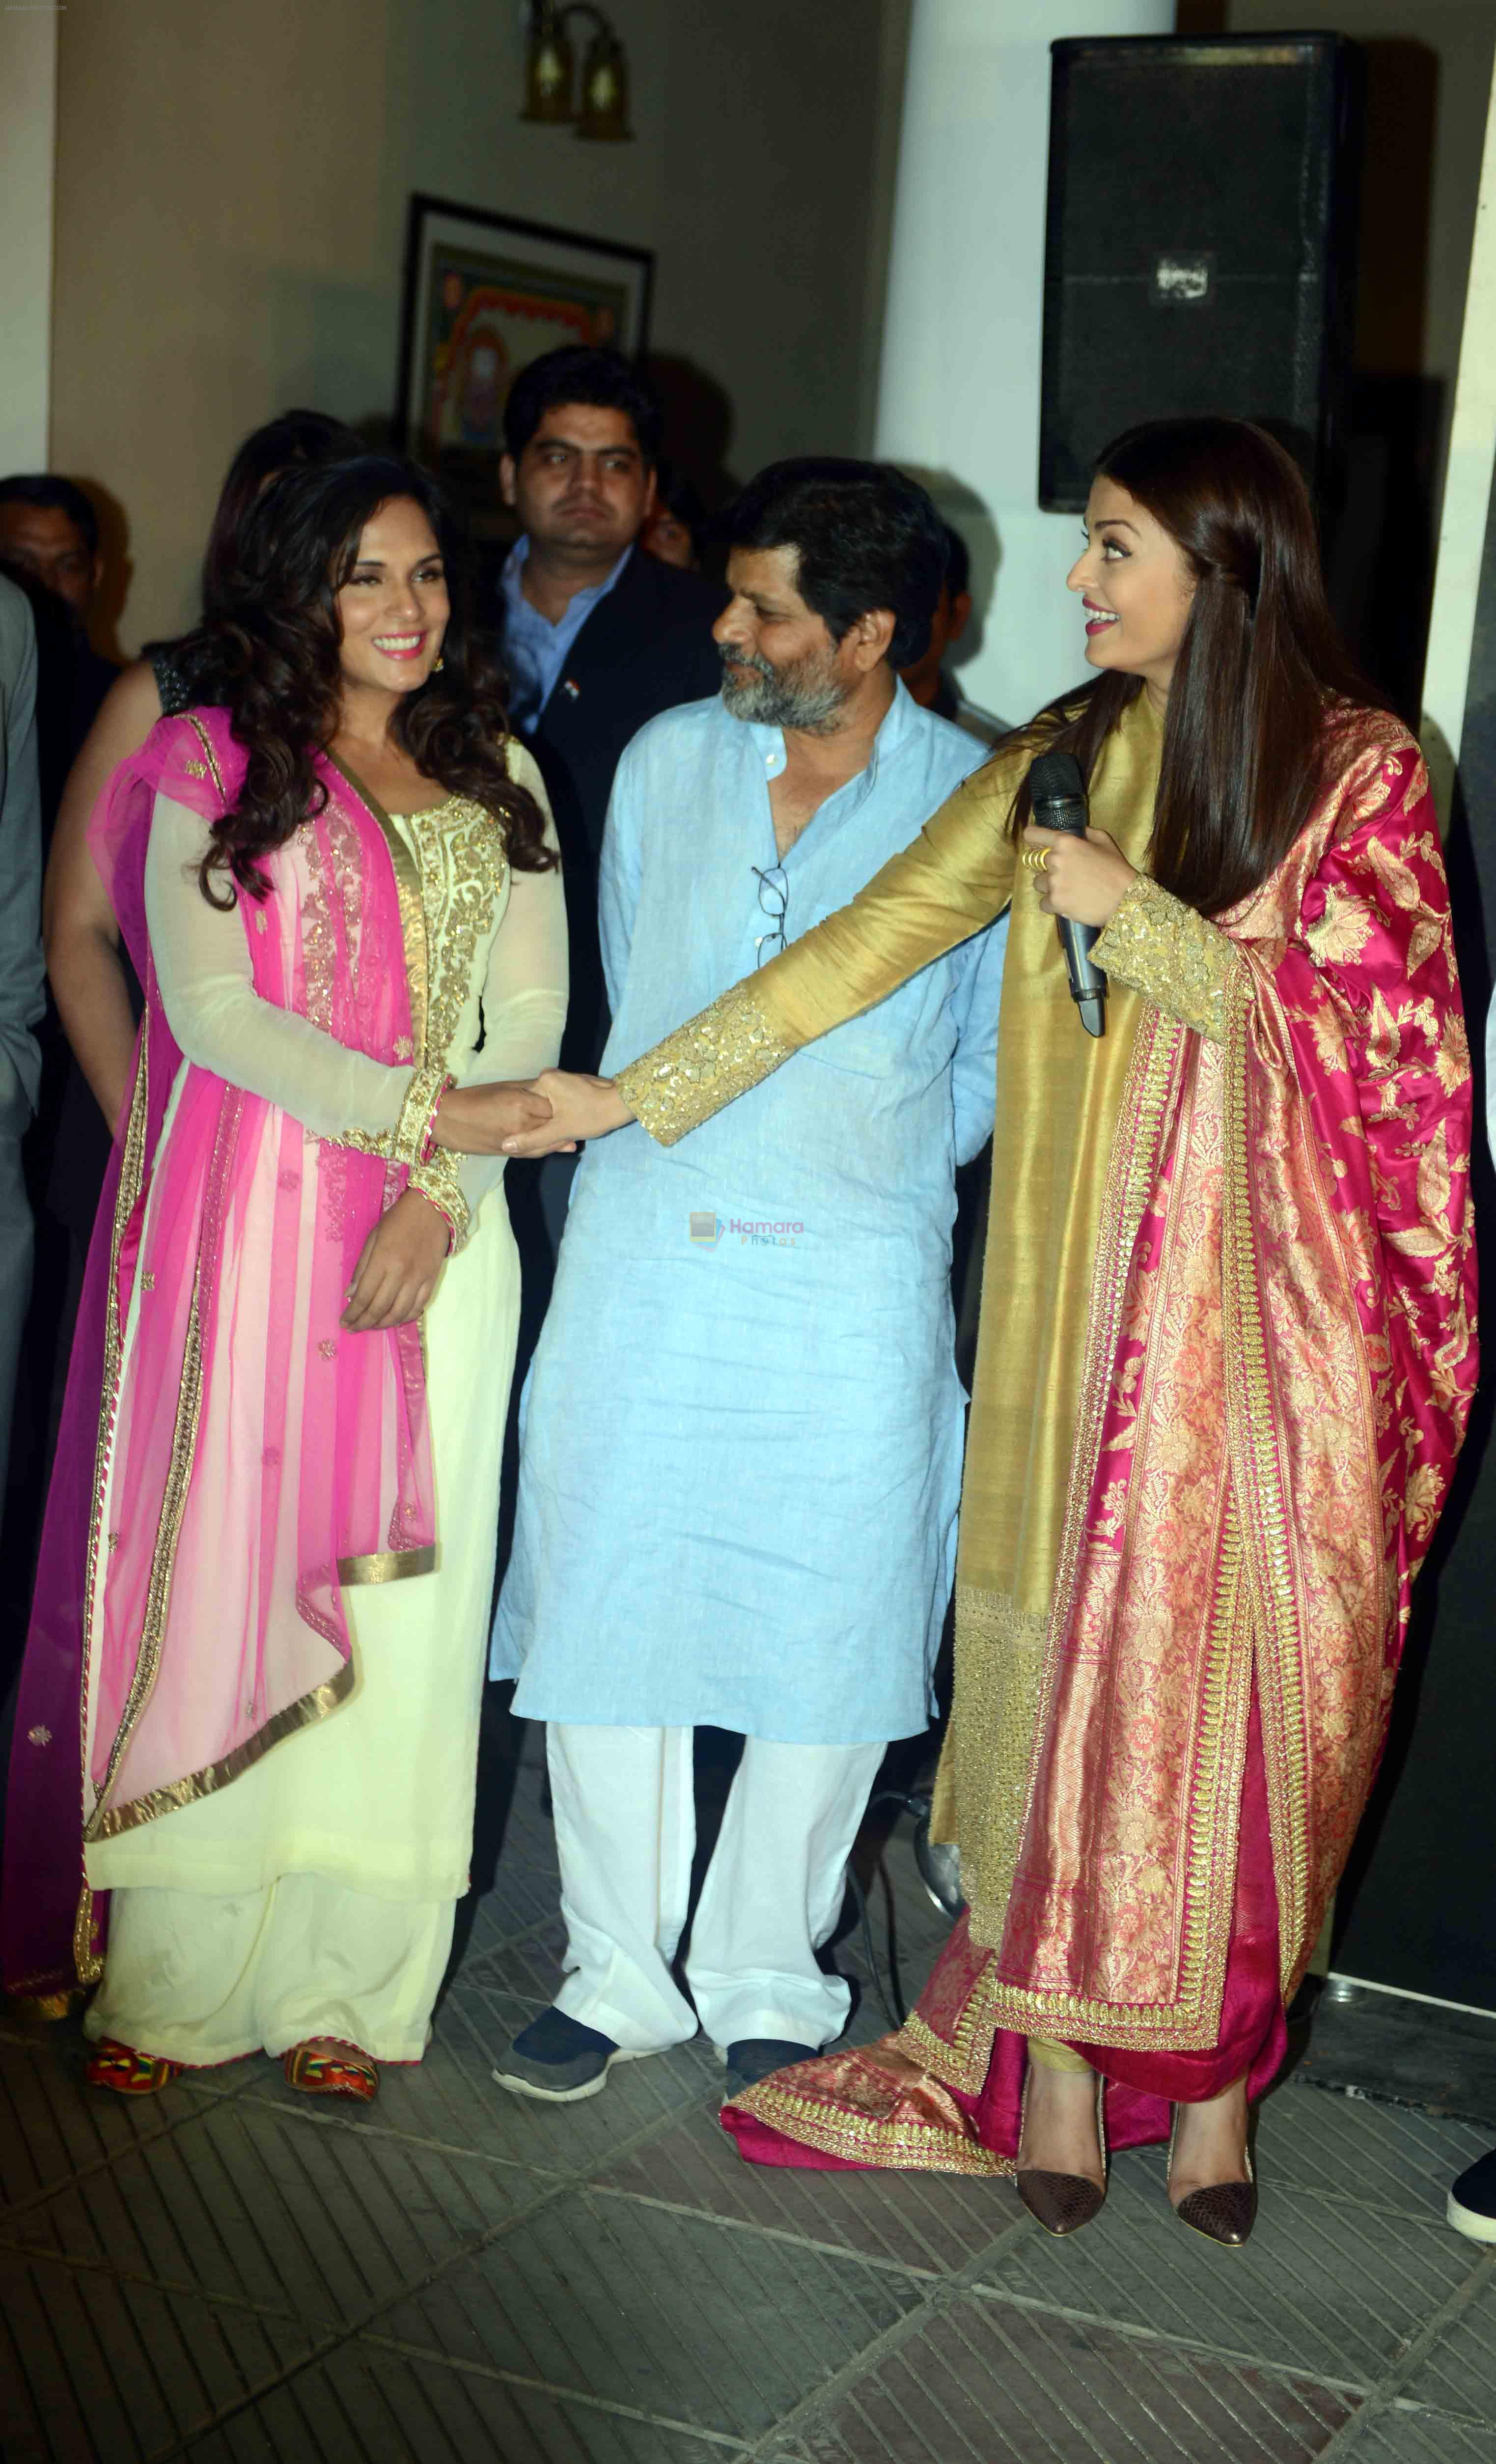 Aishwarya Rai Bachchan, Richa Chadda at the first look launch of Sarbjit in Delhi on 29th Feb 2016